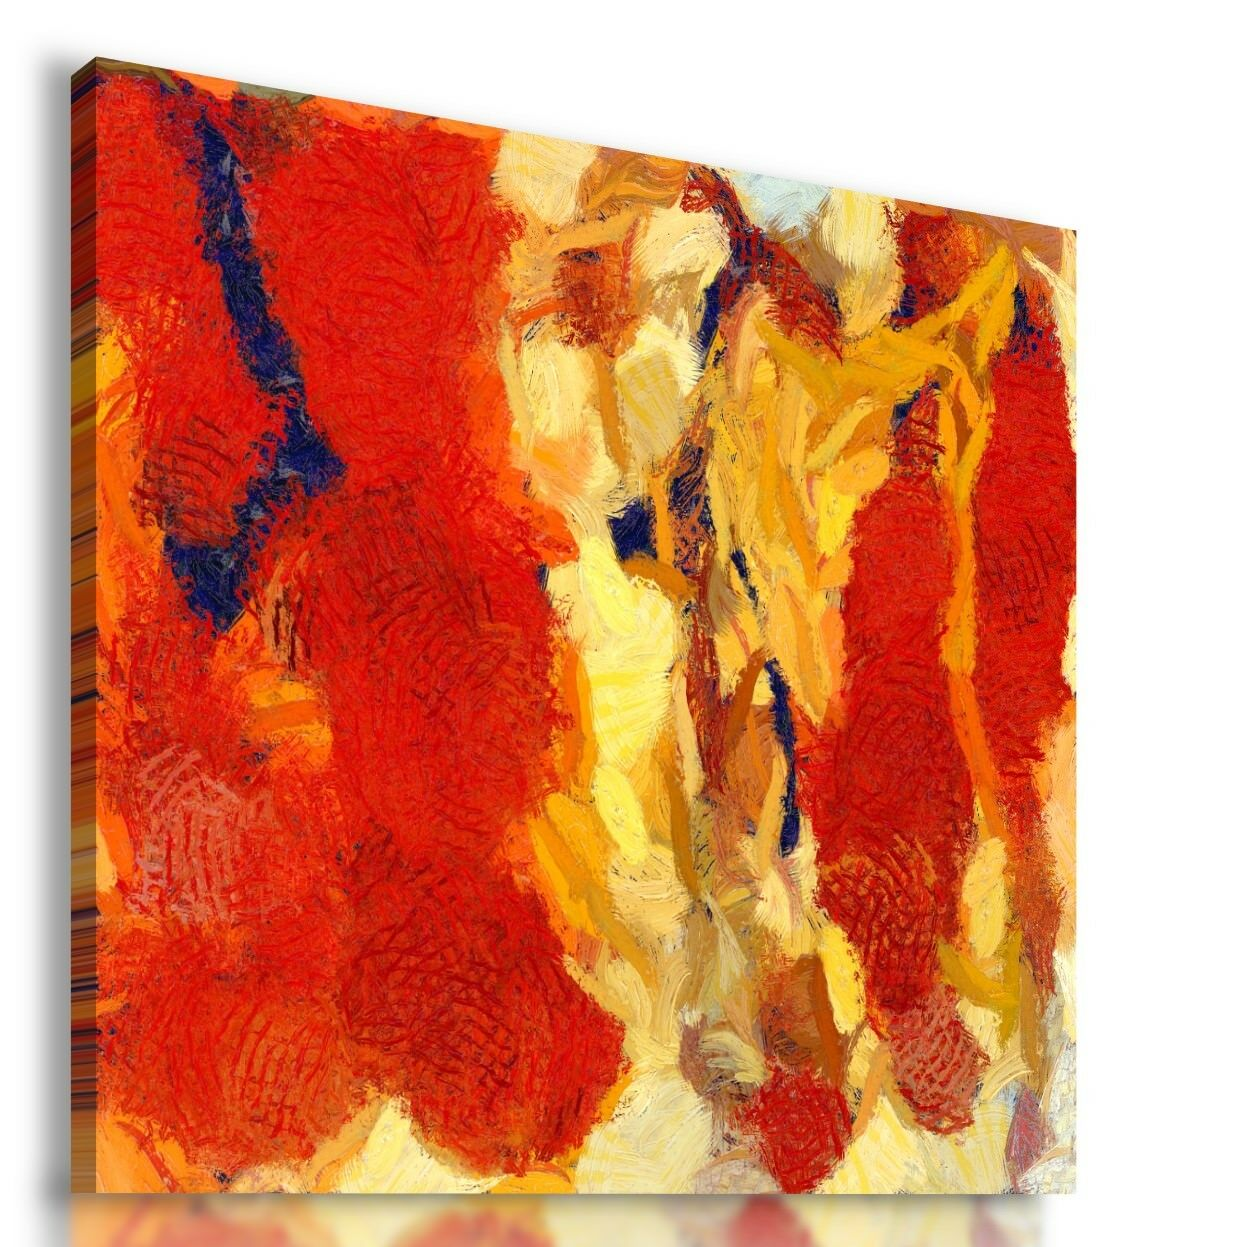 PAINTING ABSTRACT MODERN DESIGN PRINT CANVAS WALL ART PICTURE LARGE AB822 MATAGA